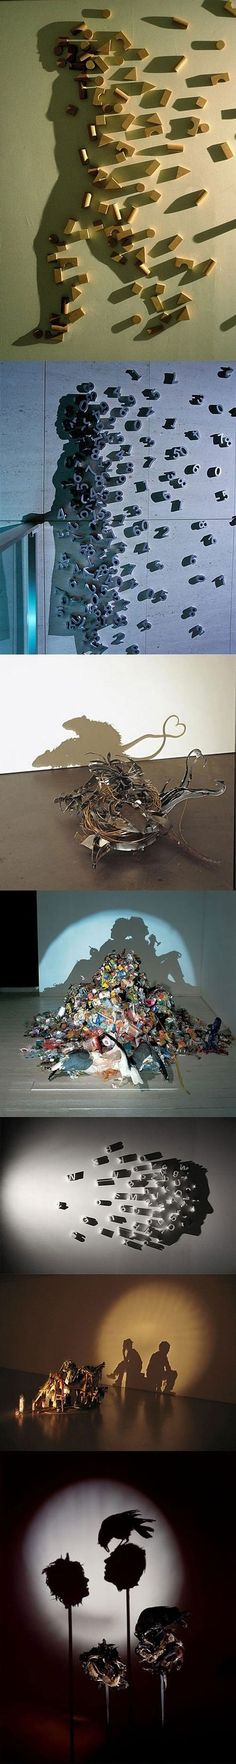 Playing With Shadow Art